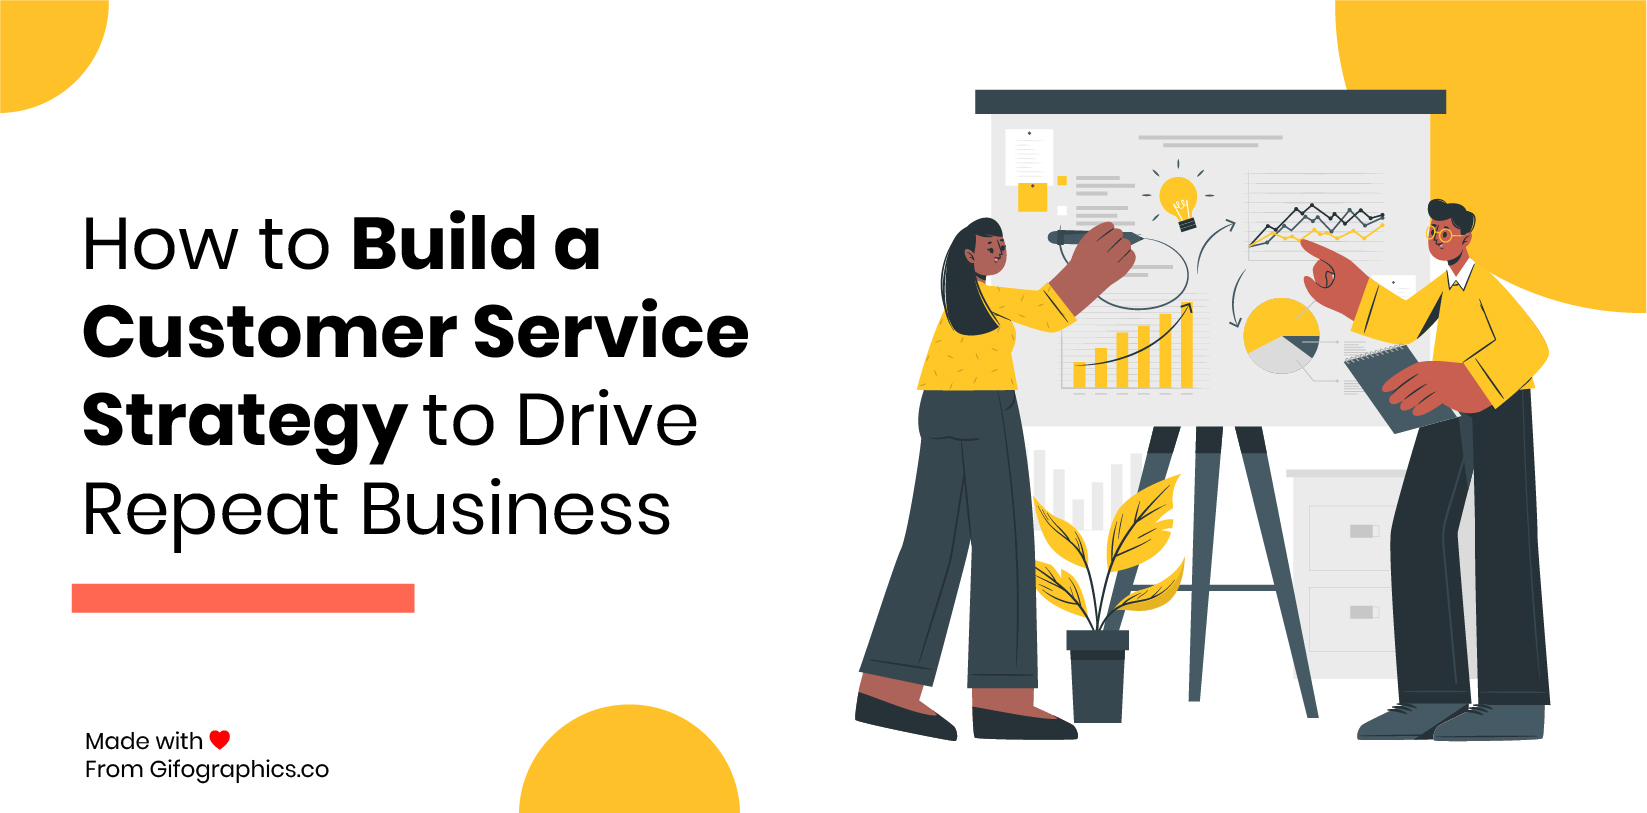 How to Build a Customer Service Strategy to Drive Repeat Business